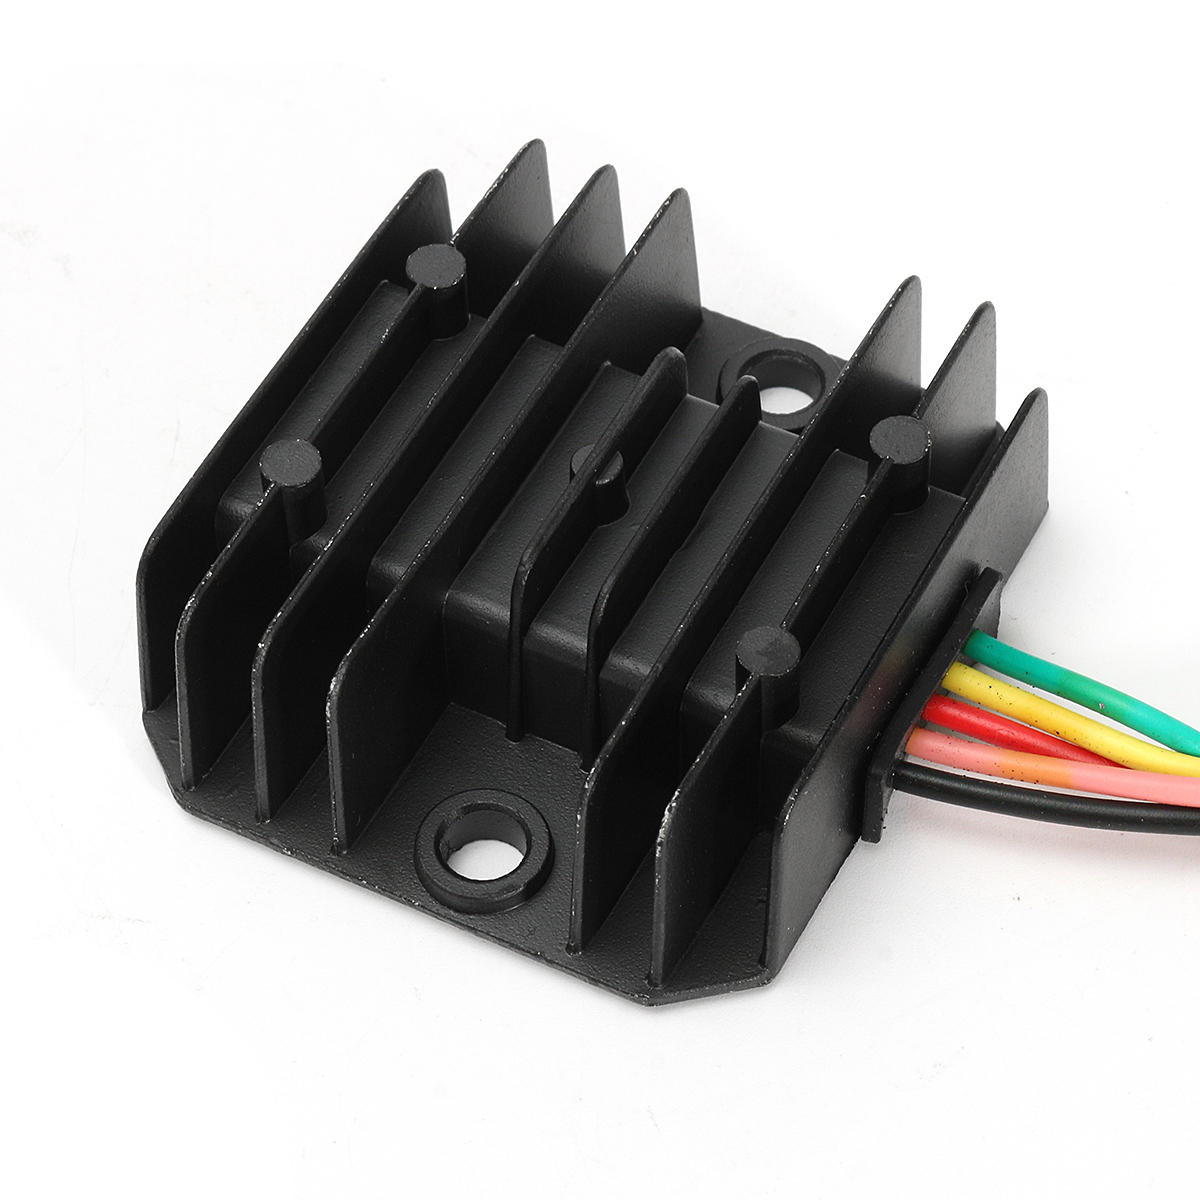 hight resolution of 12v 5 wires regulator rectifier for 50cc 125cc chinese atv quad scooter motorcycle cod